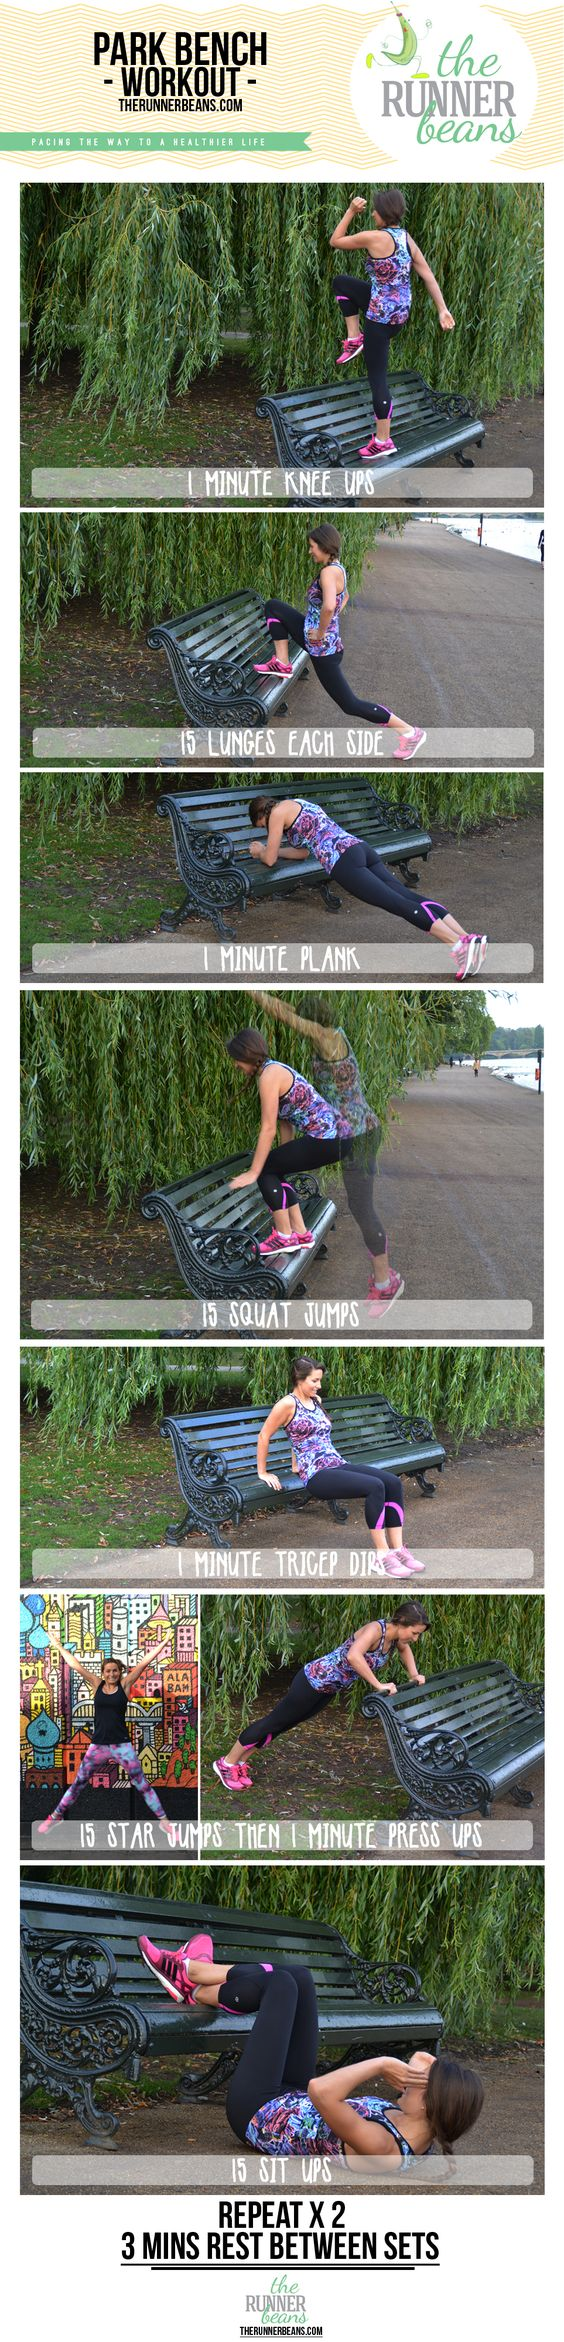 An easy workout utilising a park bench or a bench anywhere! Great to add on after some cardio or in between sets of sprint intervals. No equipment needed and works the whole body. www.therunnerbeans.com